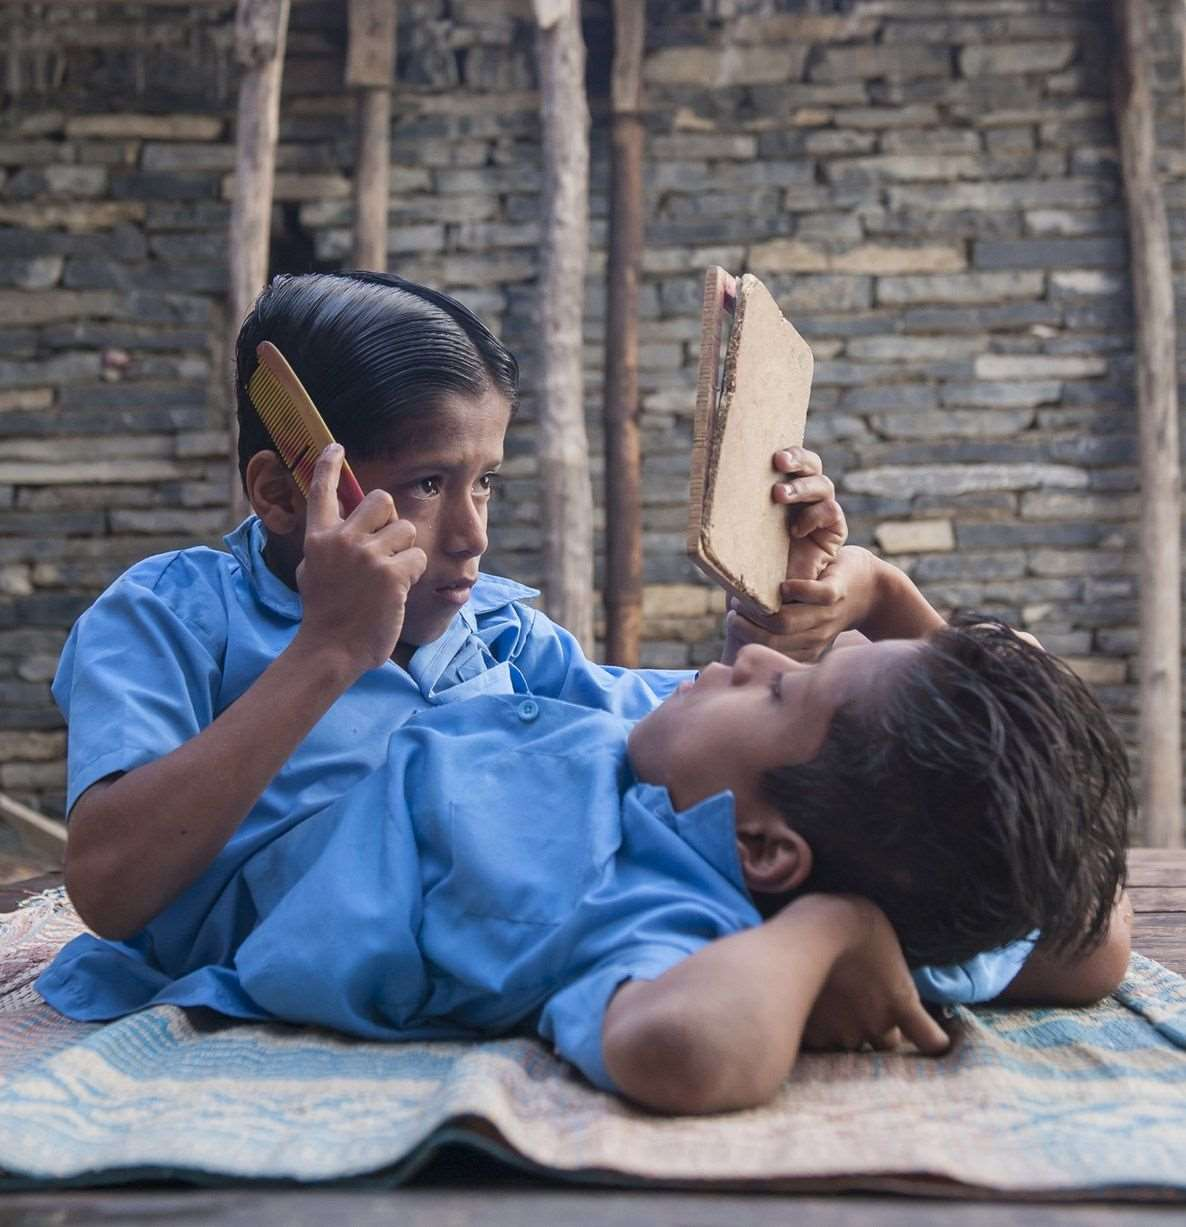 Conjoined-twins-Shivnath-and-Shivram-3397066